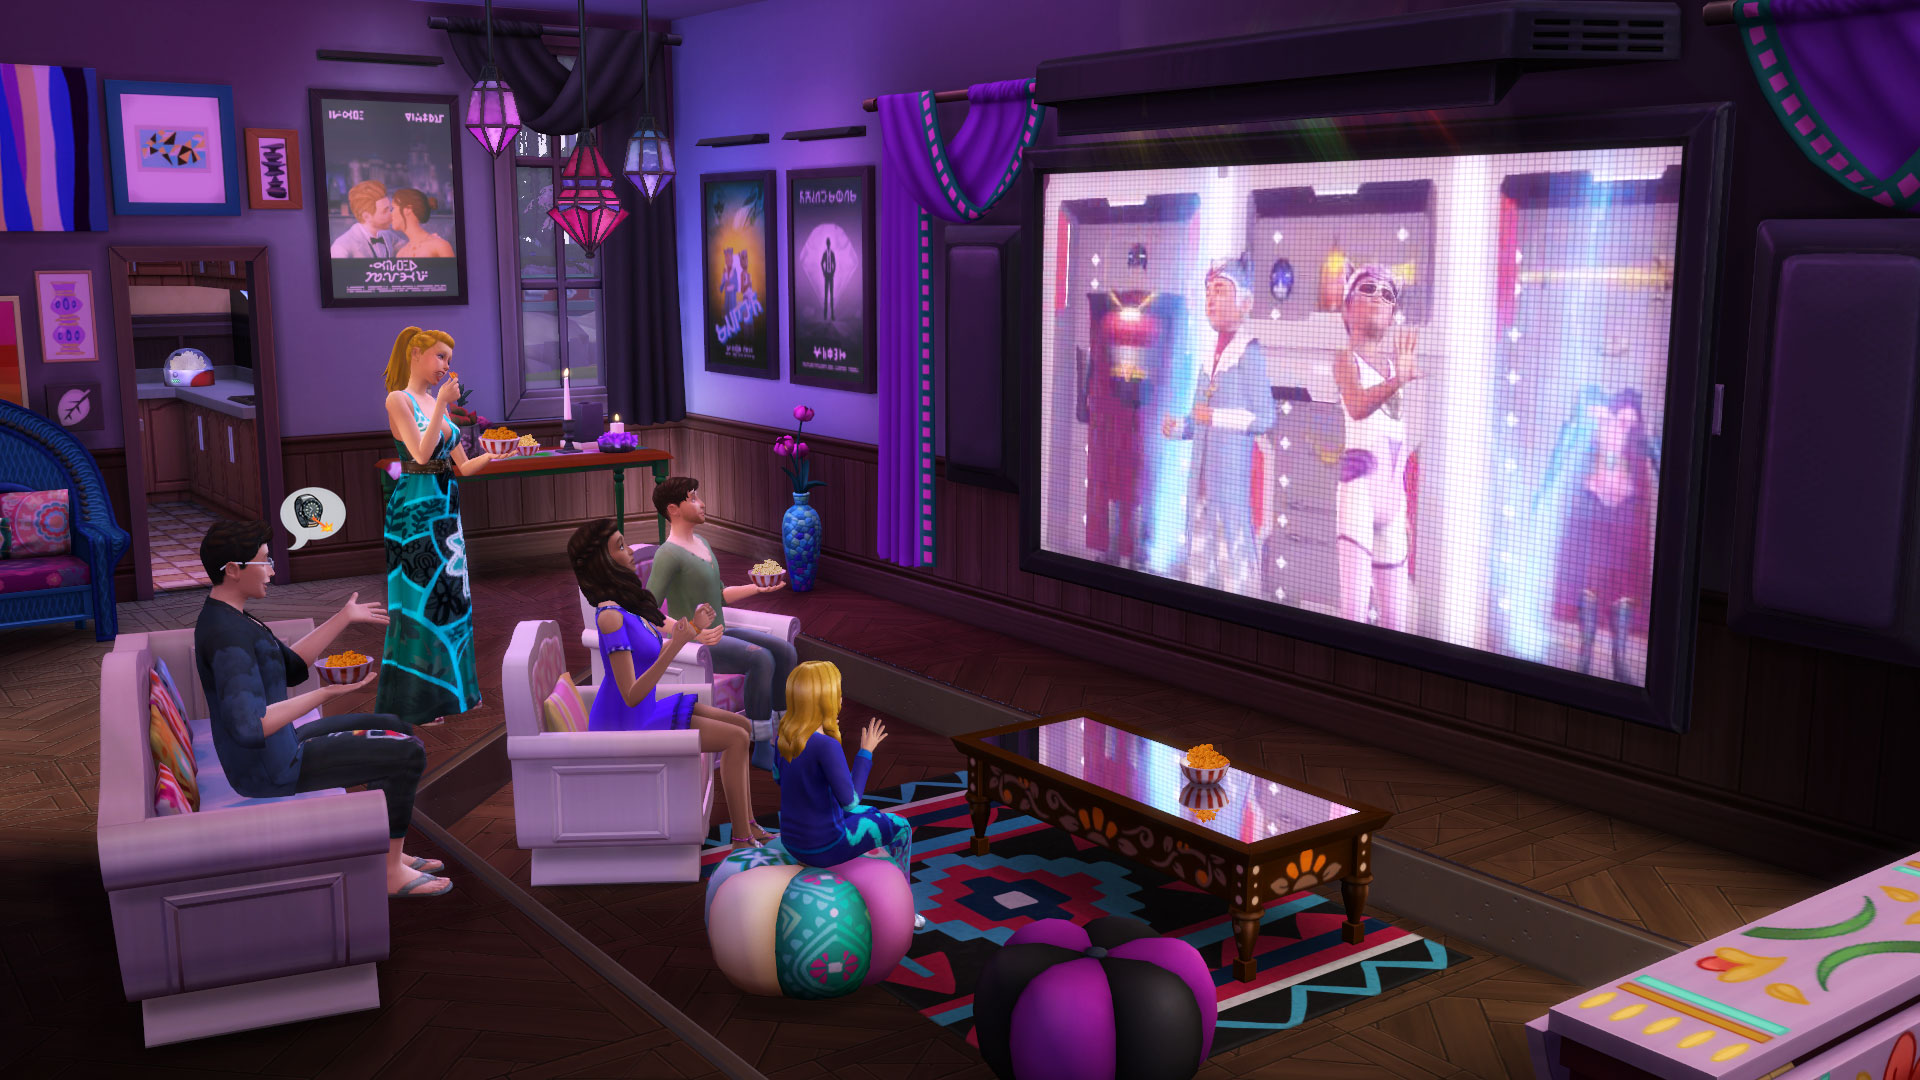 The Sims - It's Movie Time! The Sims 4 Movie Hangout Stuff is Coming Next Week - Official Site